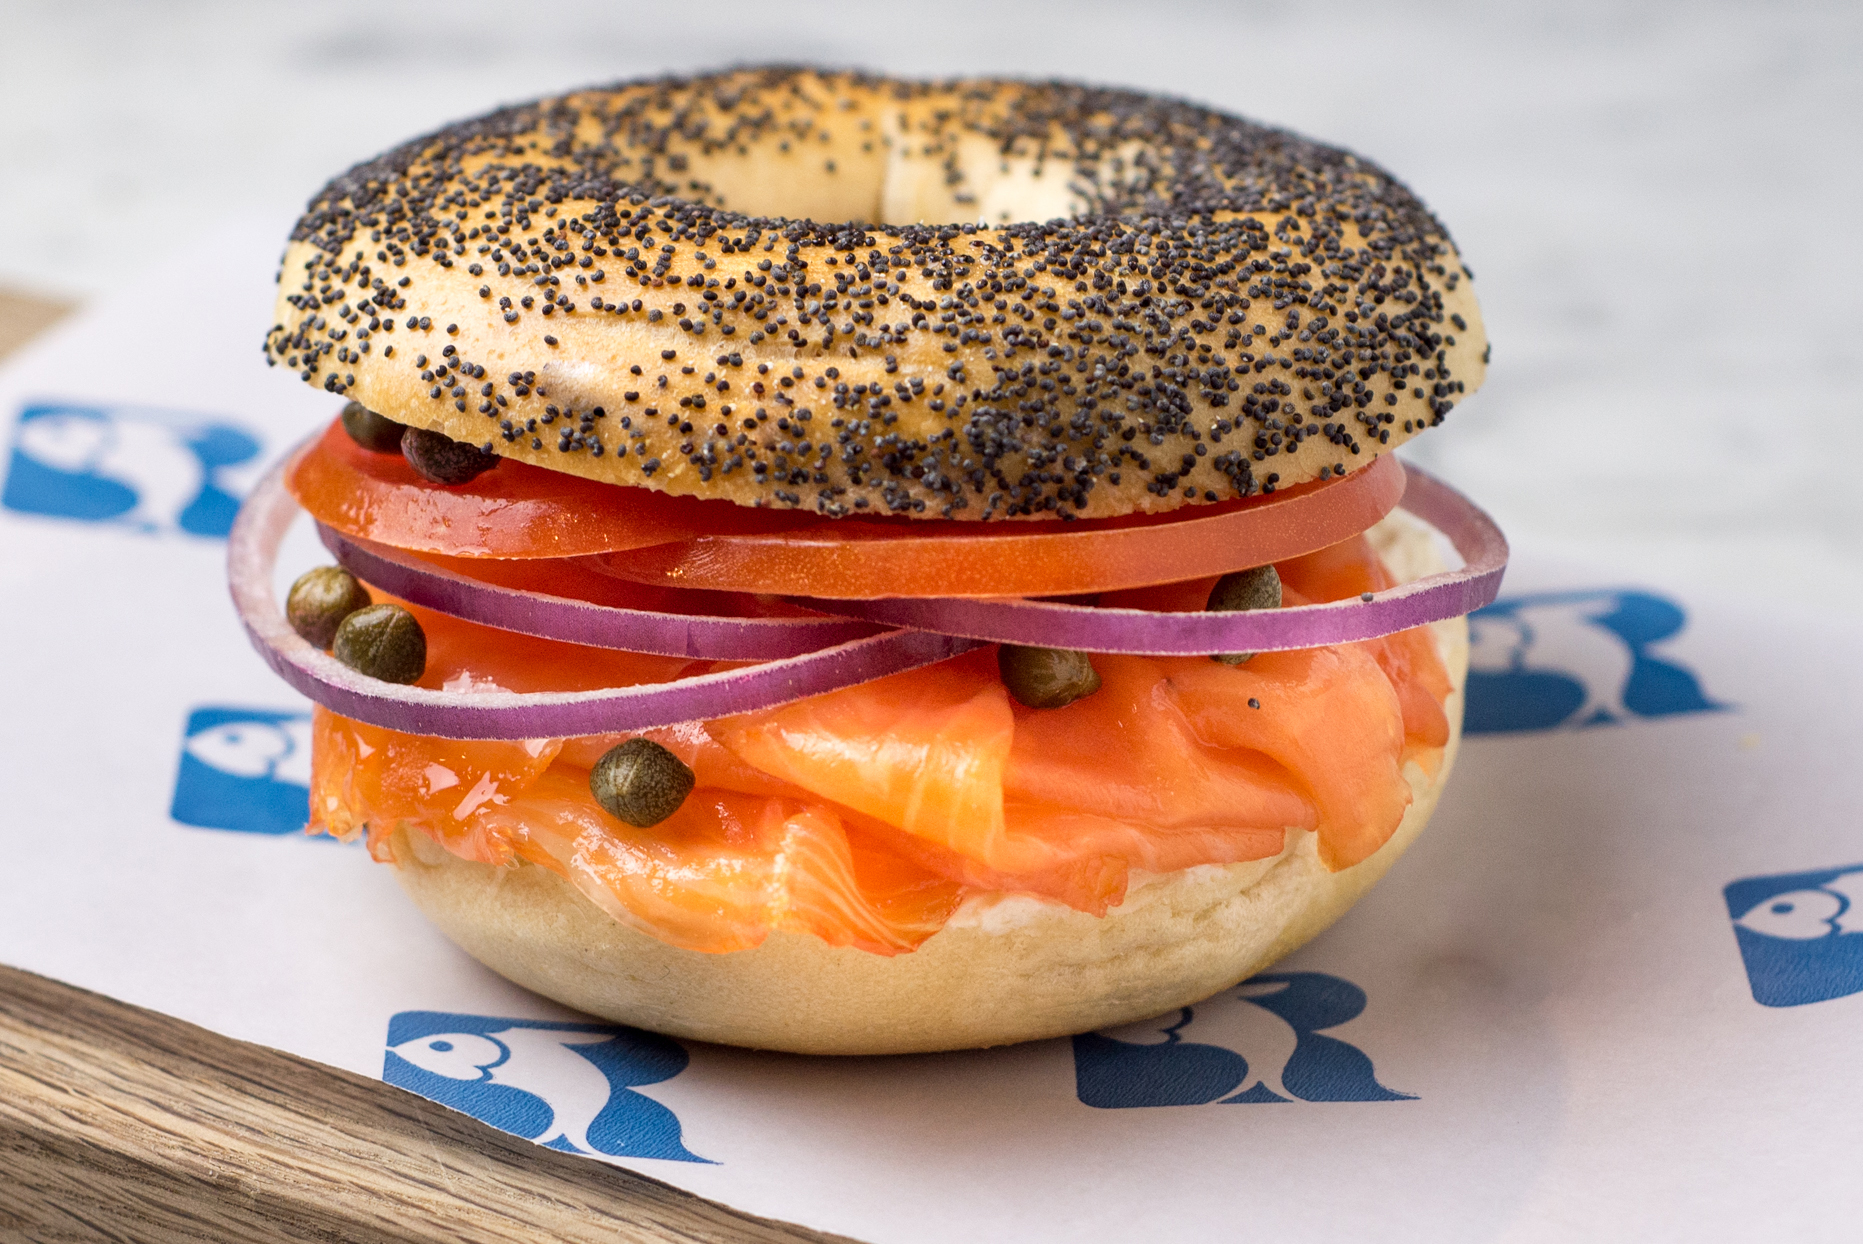 Bagel and lox sandwich from Russ & Daughters